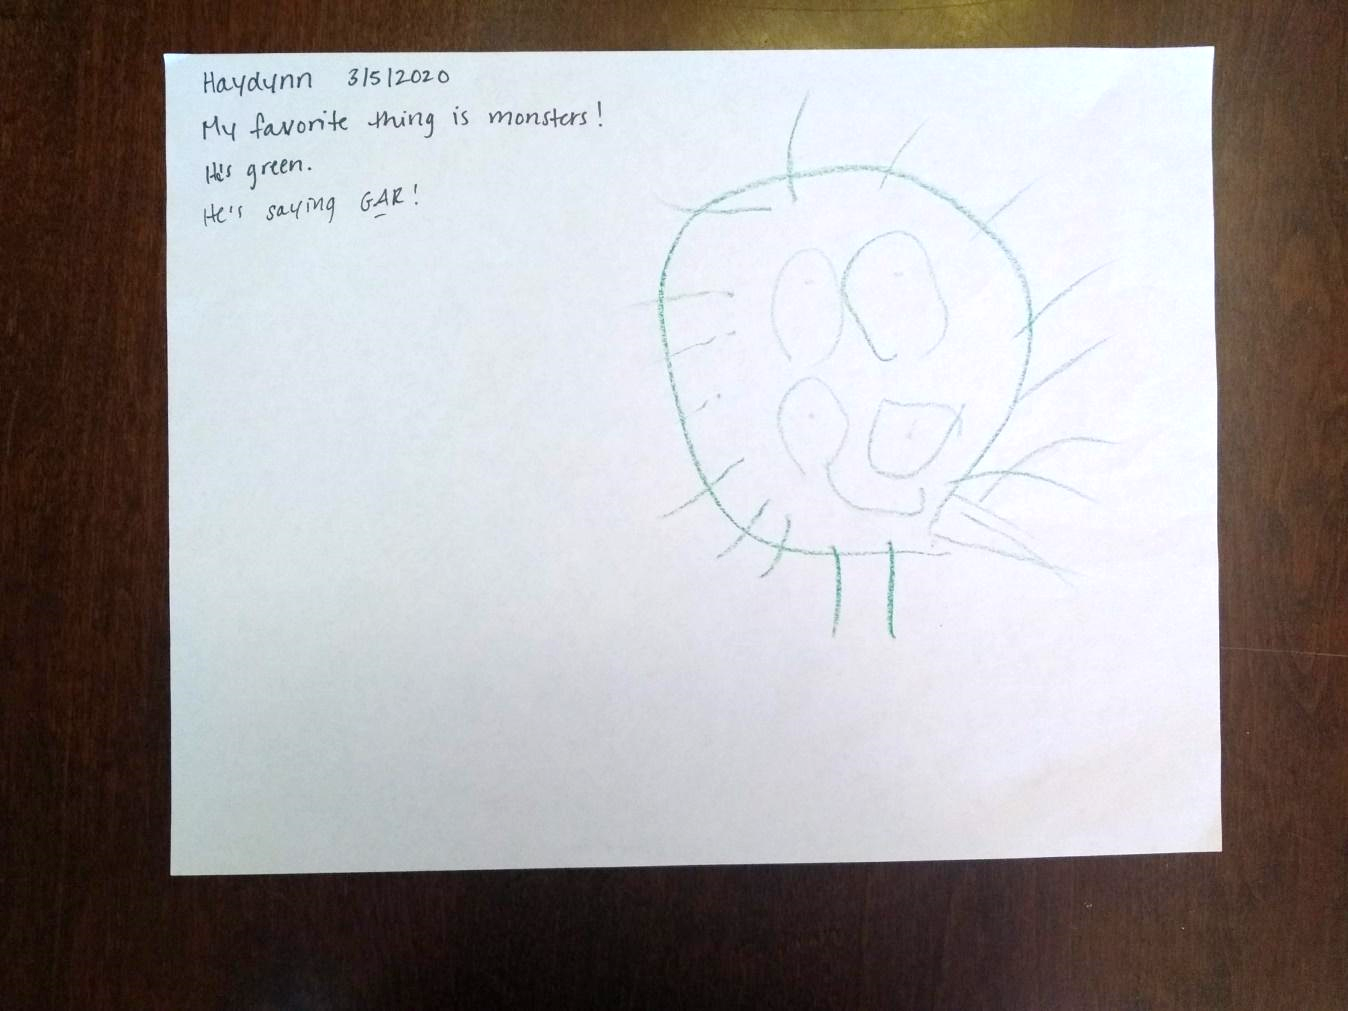 Haydynn's picture and story about a green monster.